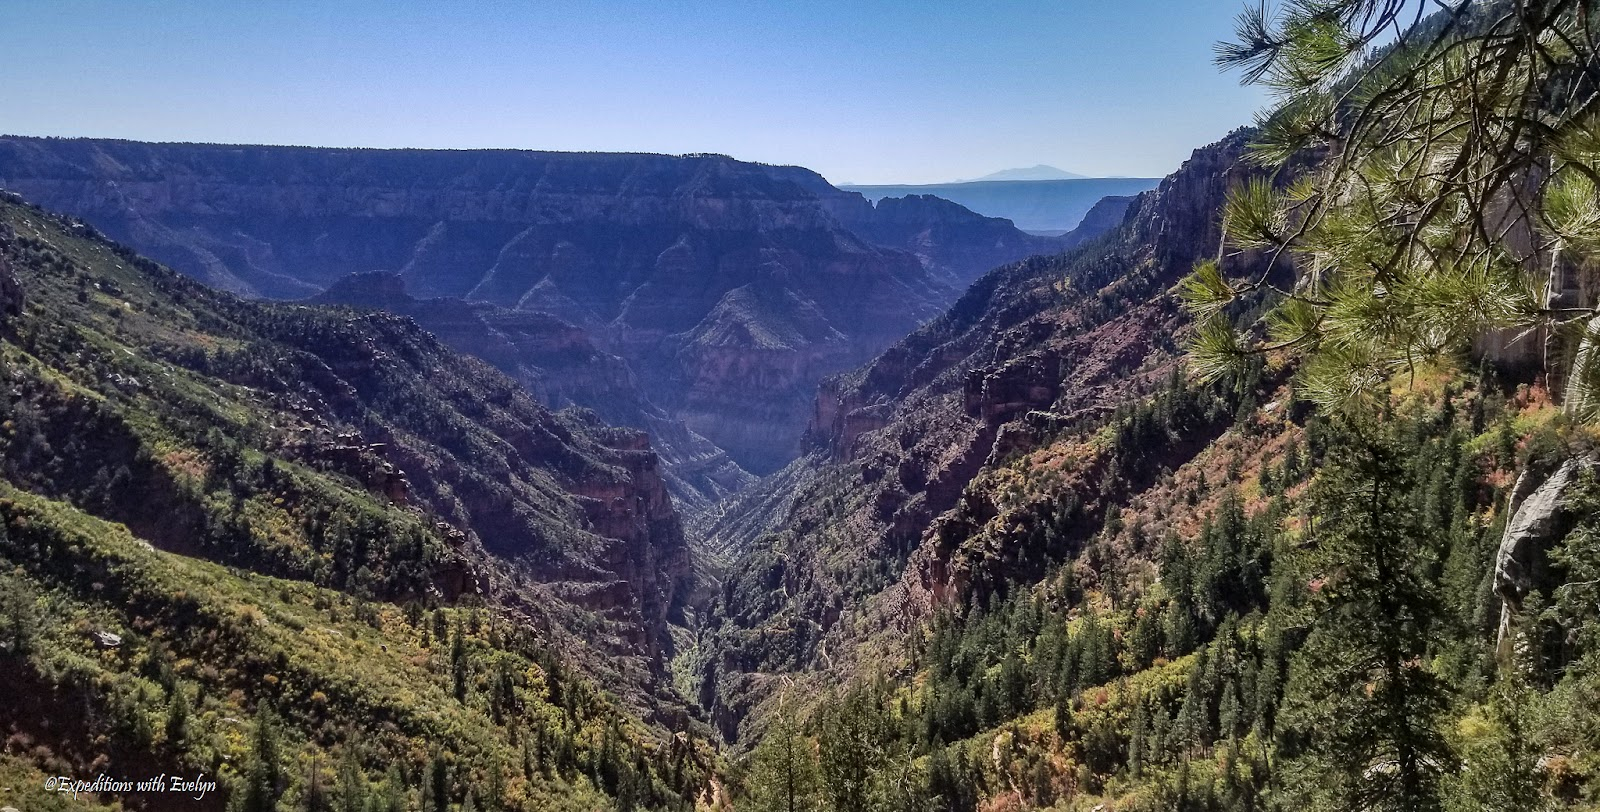 Hiking in national parks is shown by the North Kaibab Trail curving its way down the conifer-dotted landscape into the Grand Canyon.